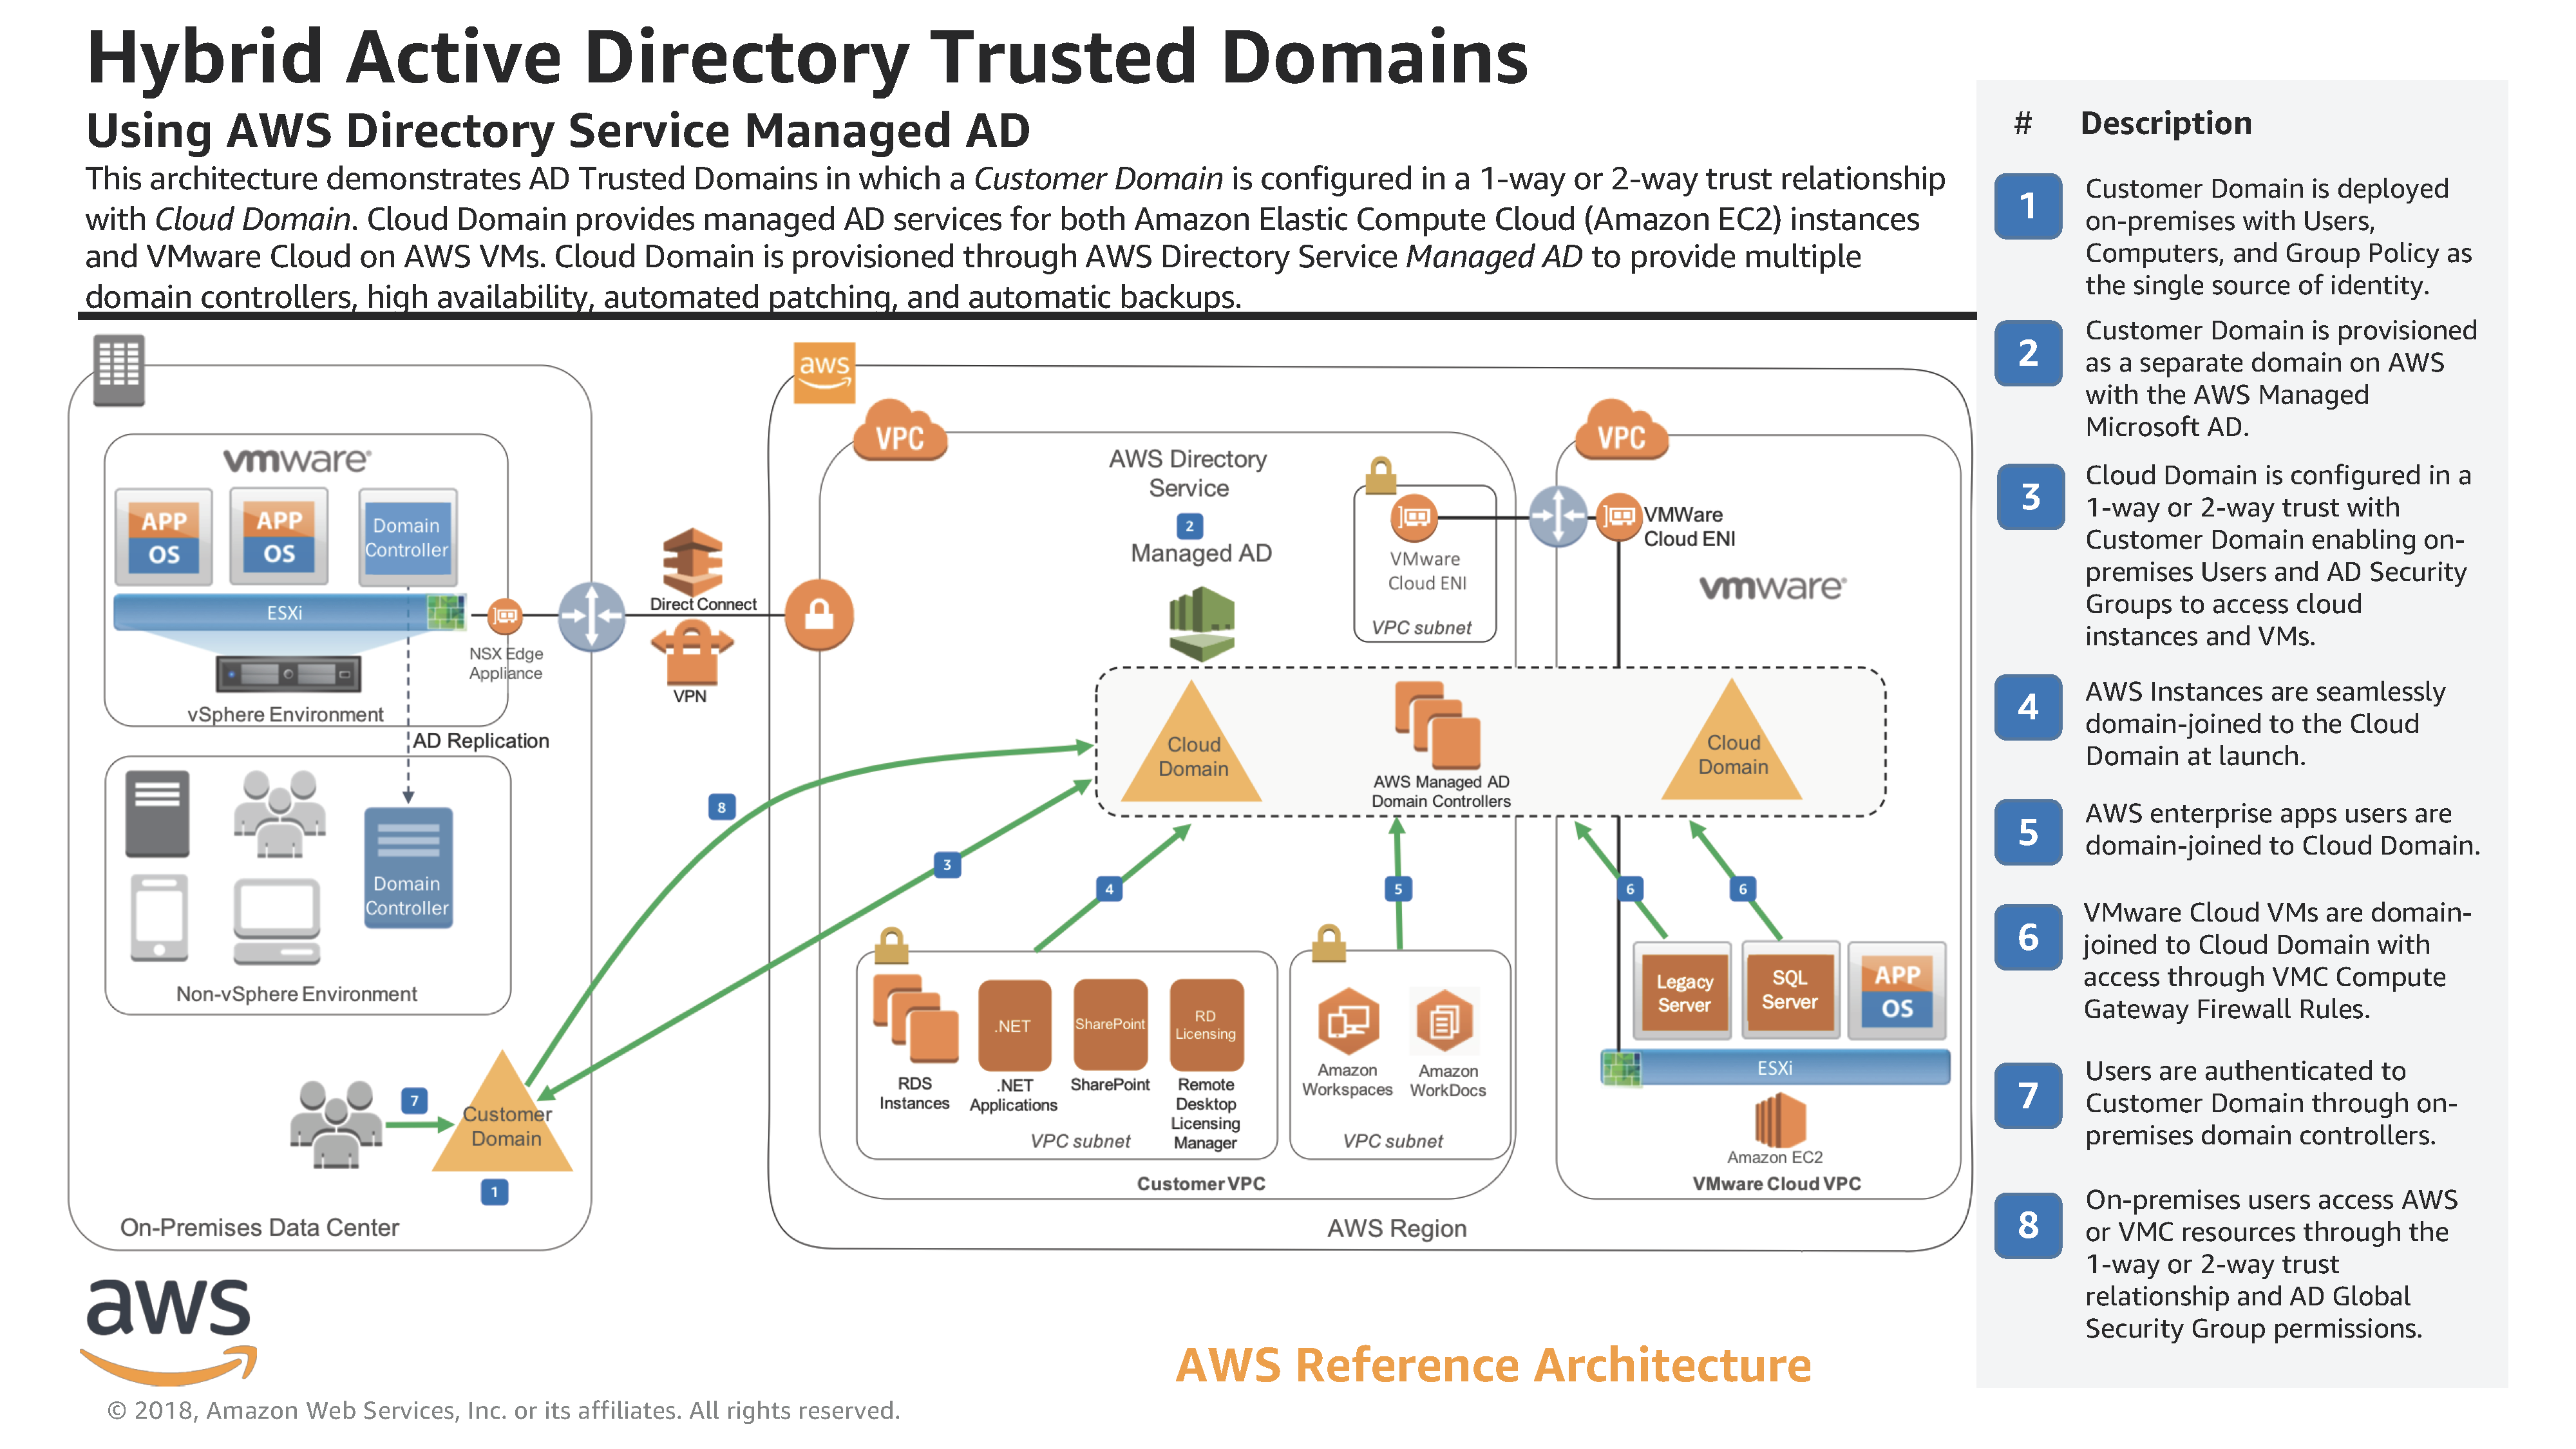 aws_reference_architecture_hybrid_active_directory_trusted_domains